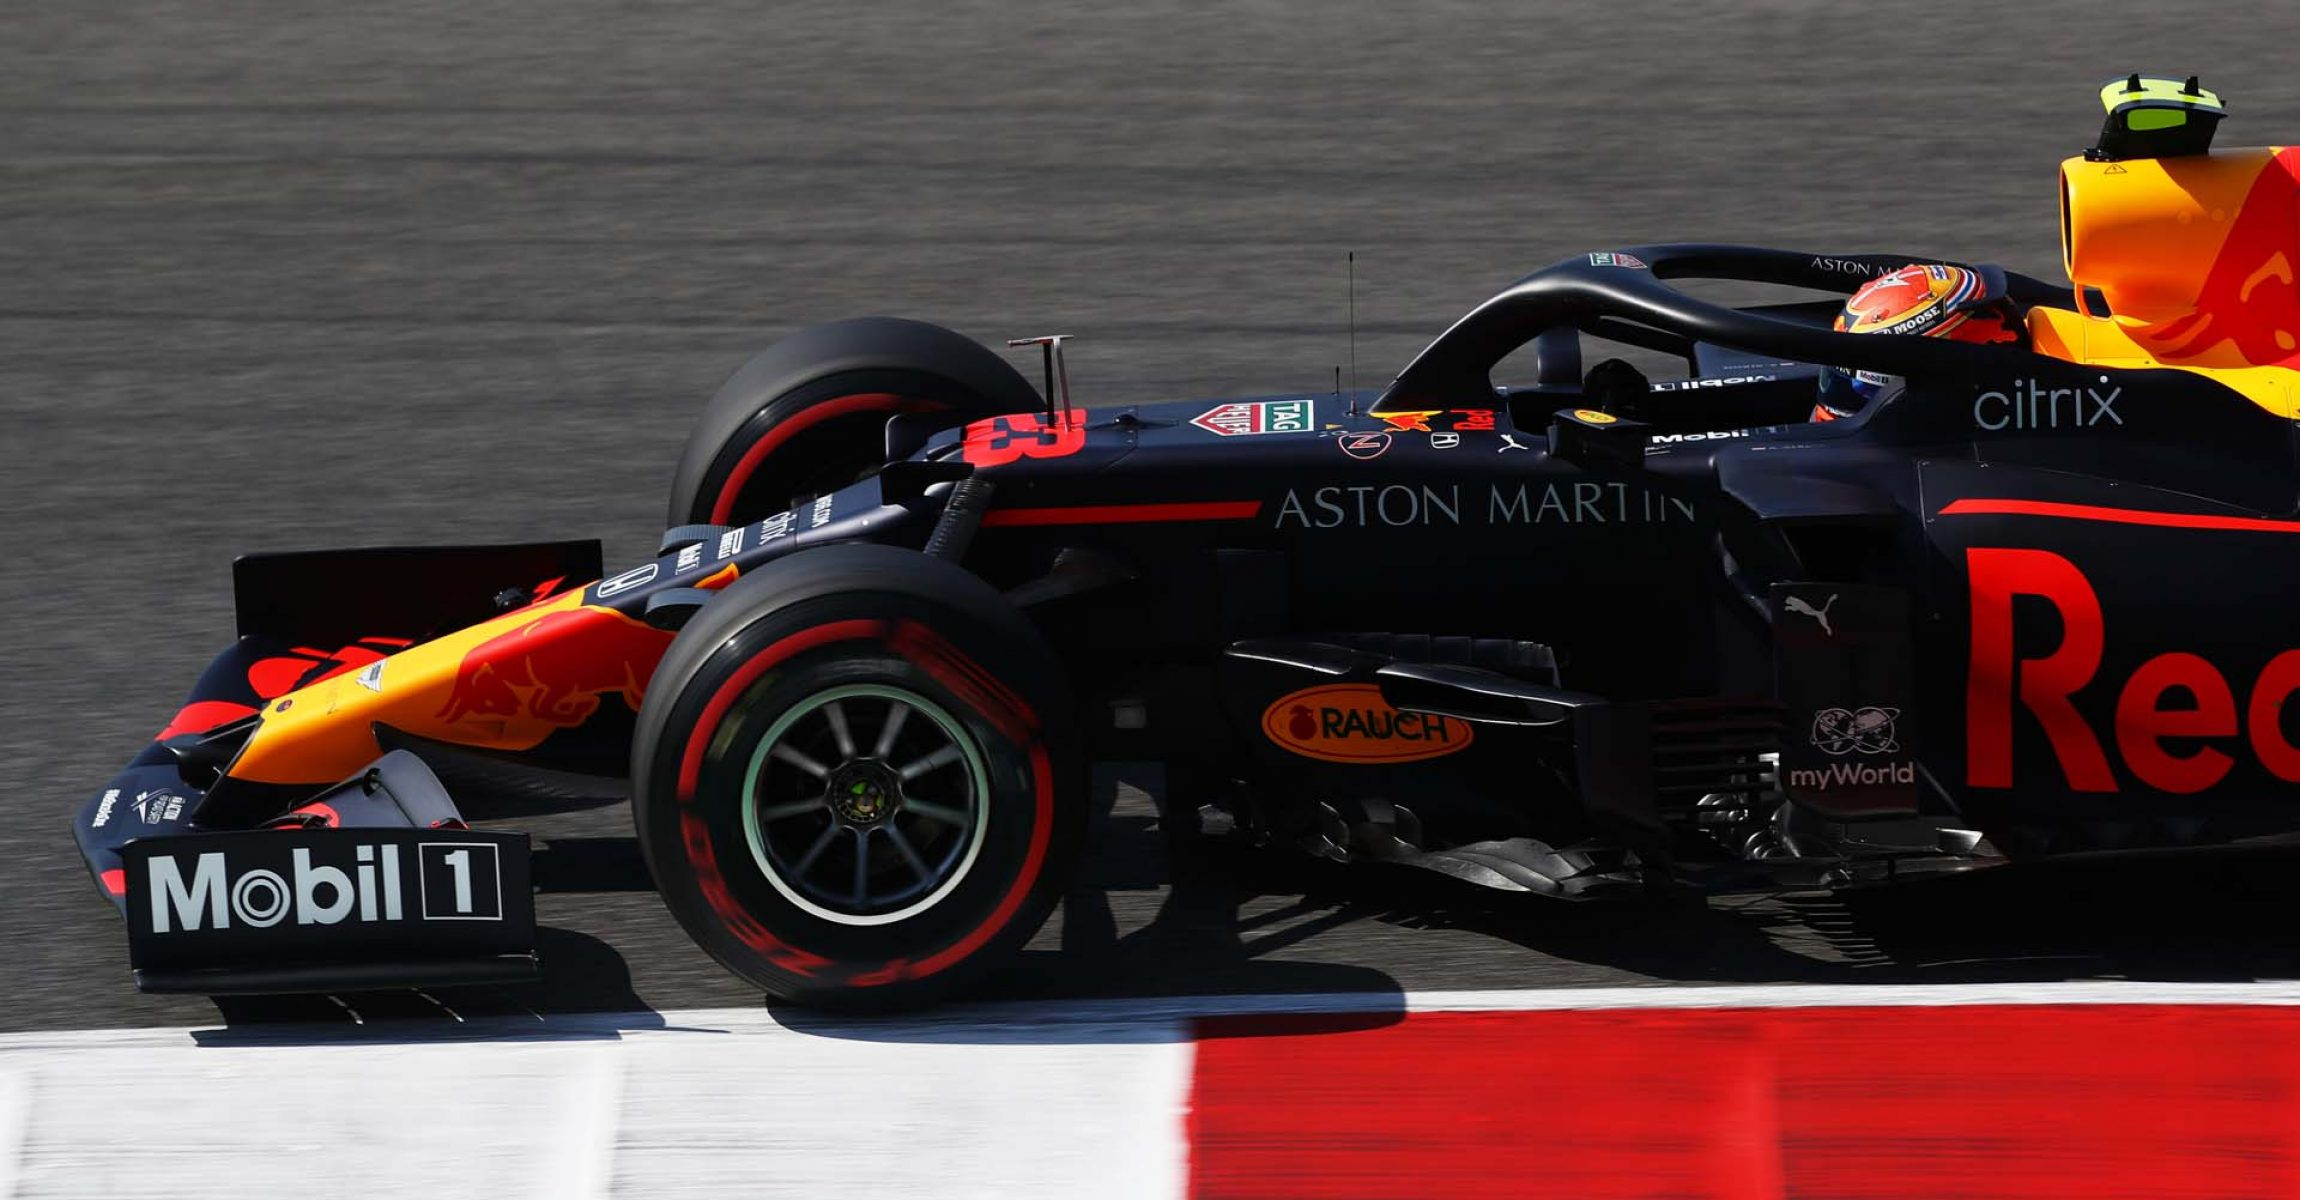 SCARPERIA, ITALY - SEPTEMBER 11: Alexander Albon of Thailand driving the (23) Aston Martin Red Bull Racing RB16 on track during practice ahead of the F1 Grand Prix of Tuscany at Mugello Circuit on September 11, 2020 in Scarperia, Italy. (Photo by Mark Thompson/Getty Images) // Getty Images / Red Bull Content Pool  // SI202009110234 // Usage for editorial use only //